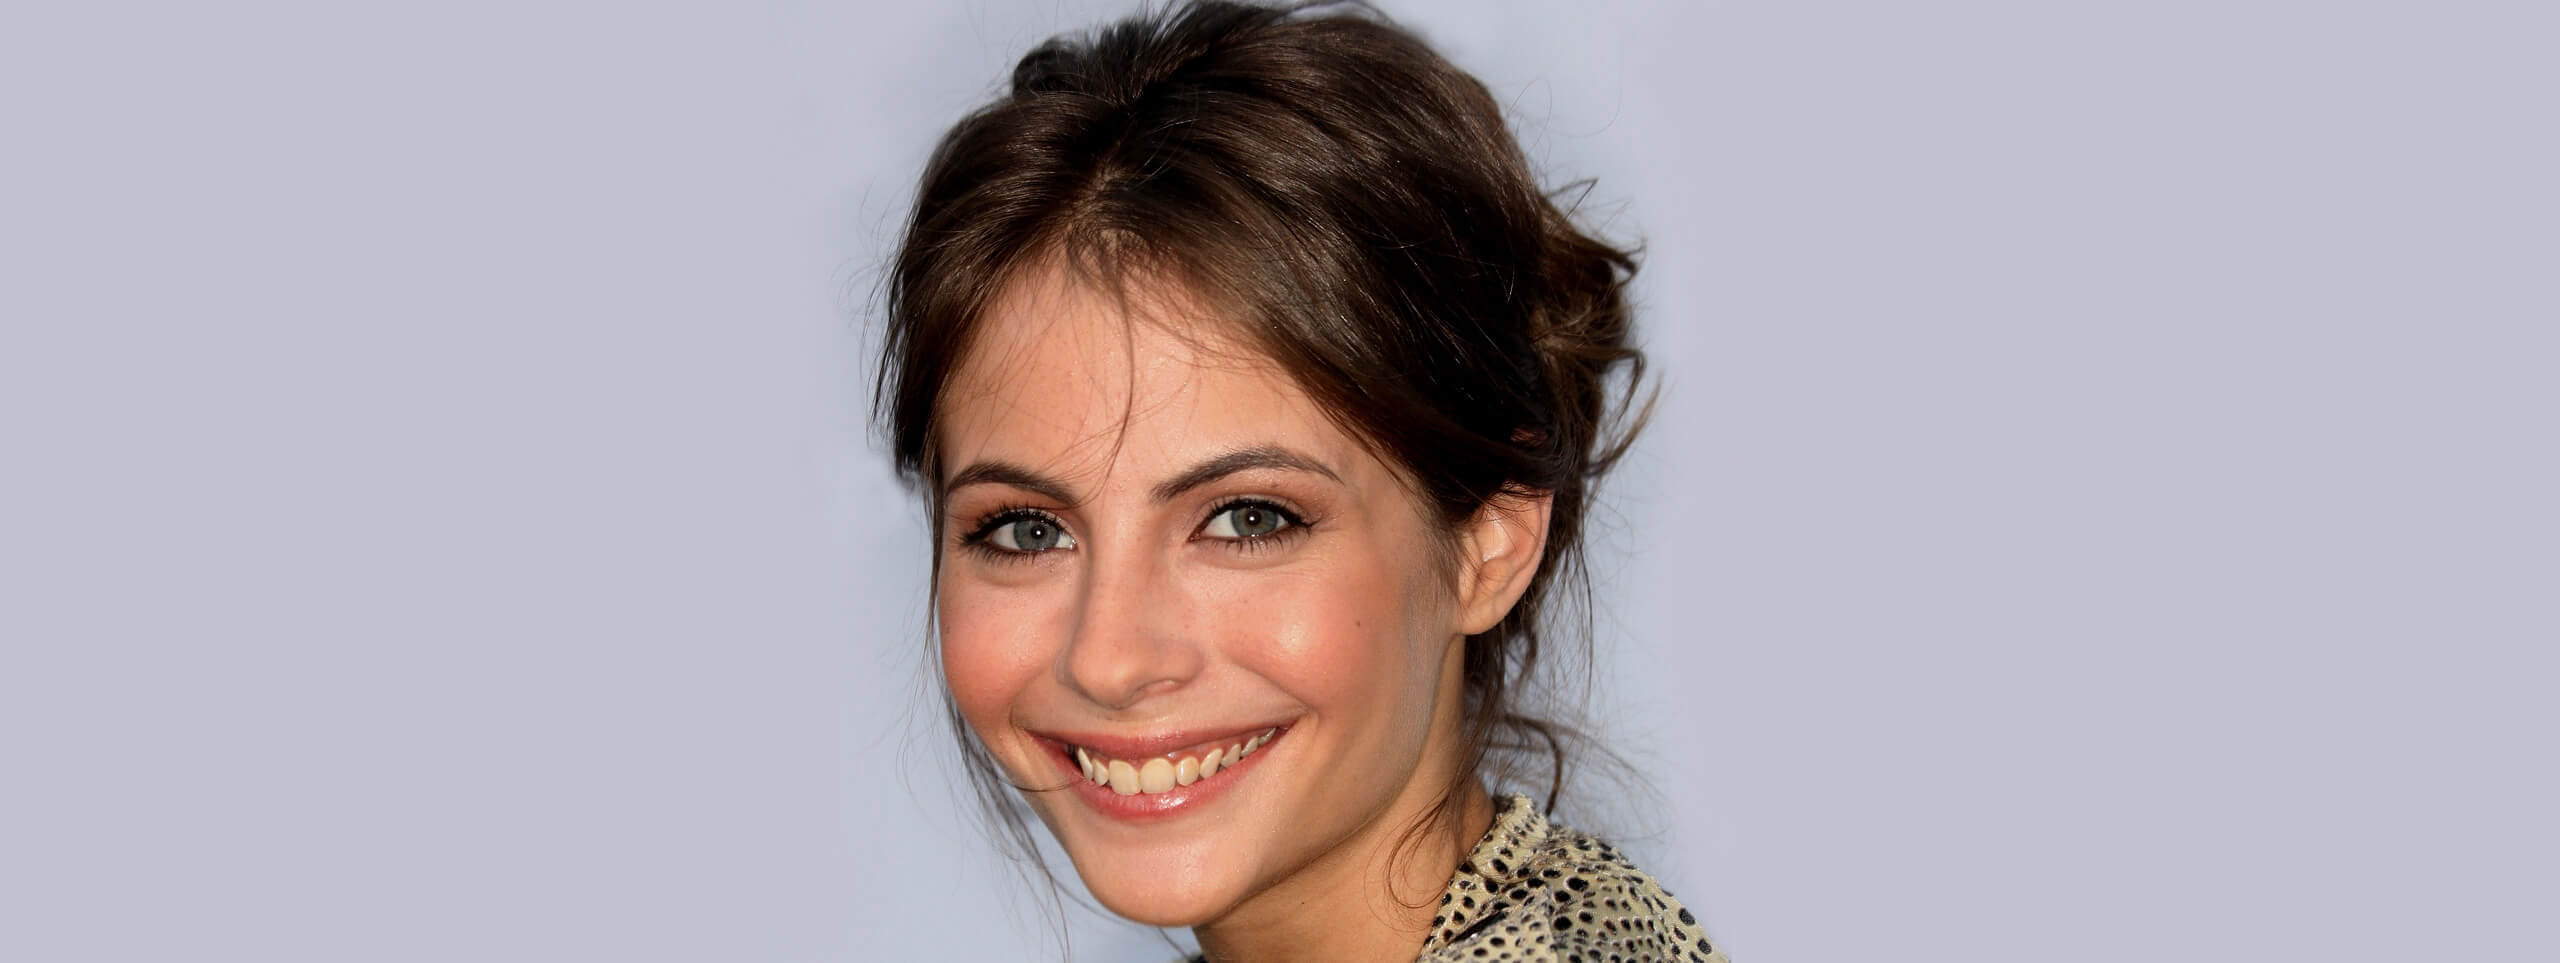 Willa Holland wears hair in low updo hairstyle